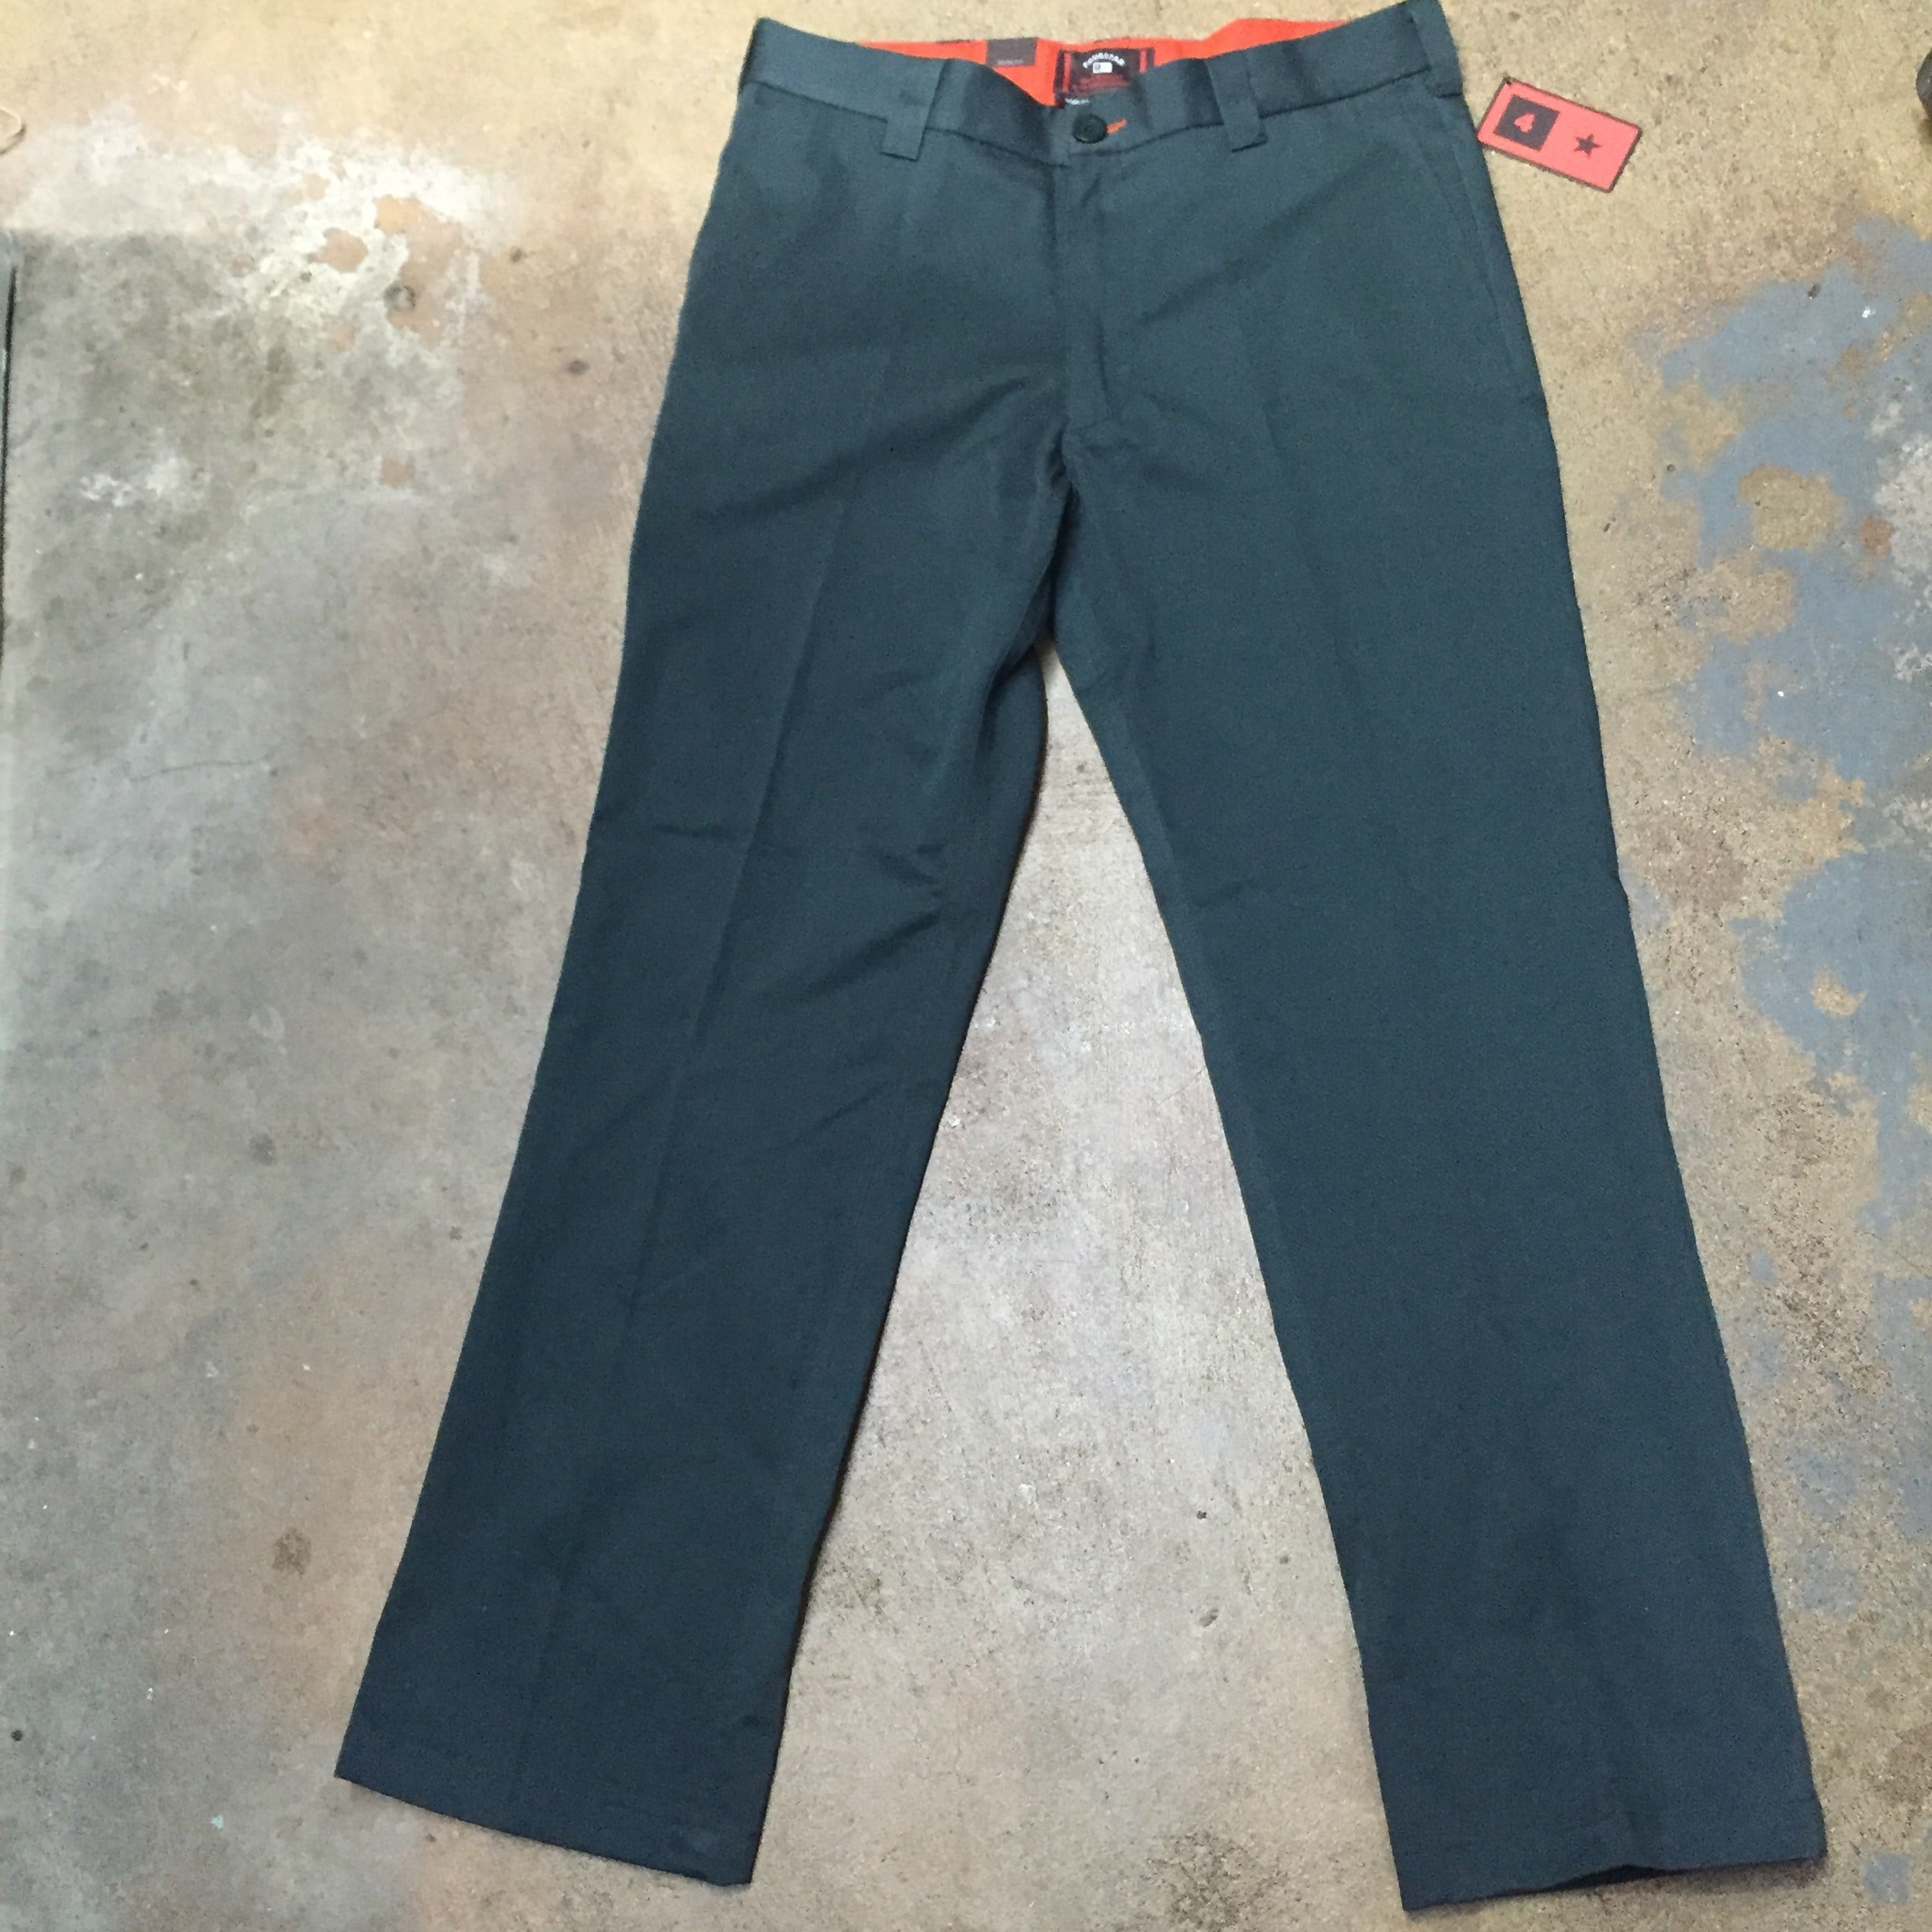 Four Star x 4Q conditioning Max Schaaf work pants